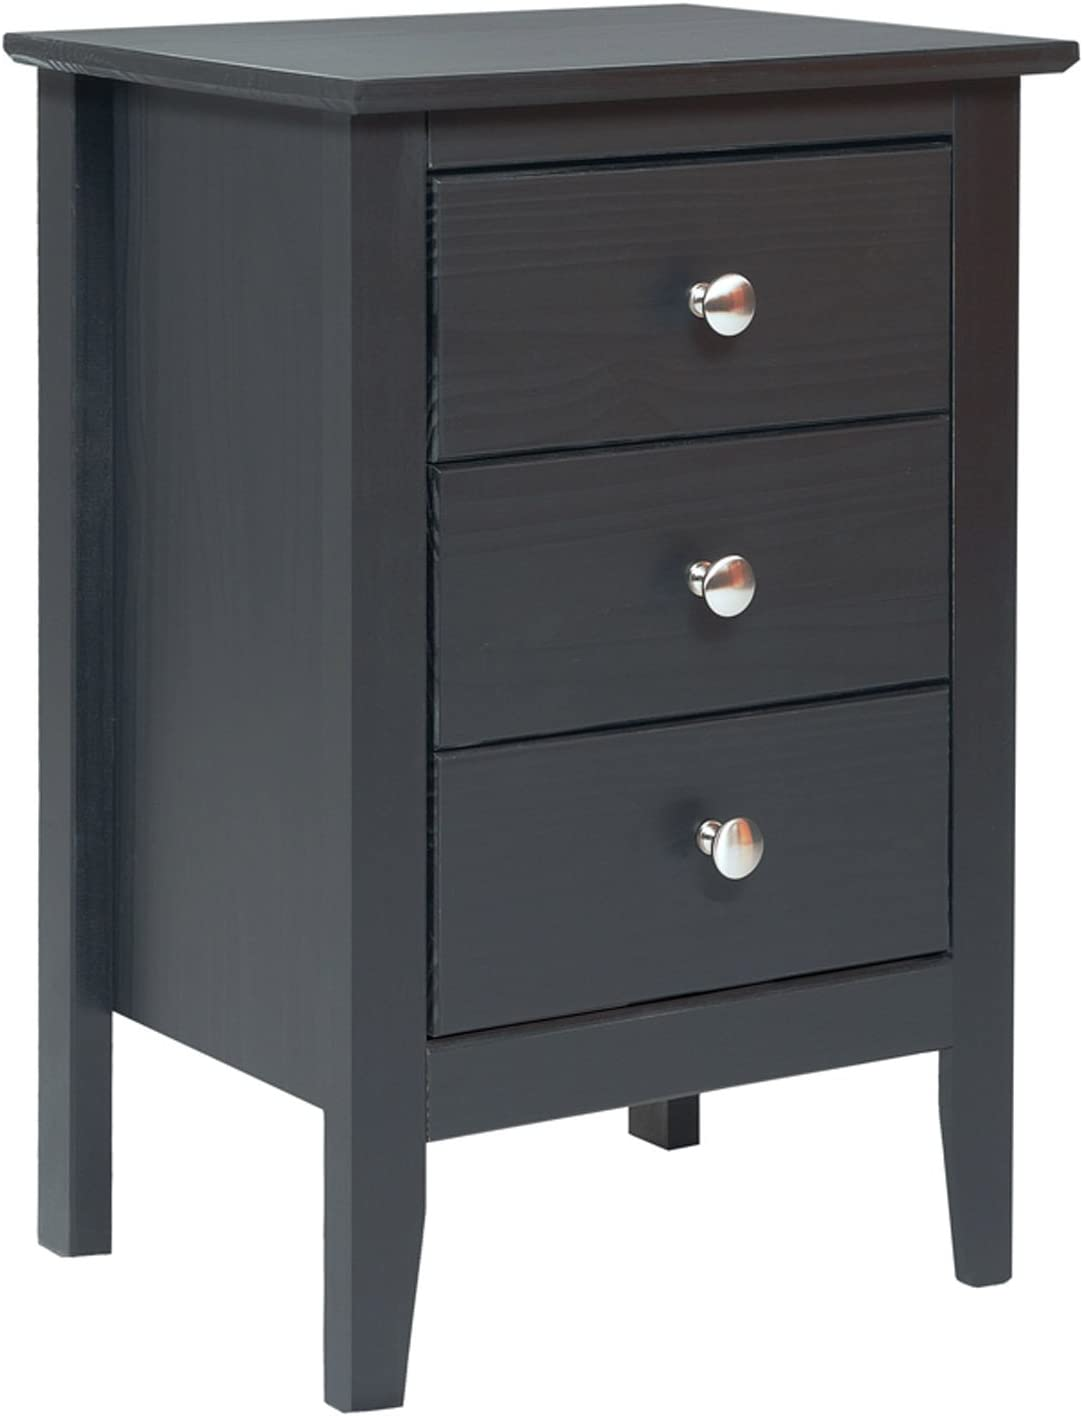 Adeptus 77245 Easy Pieces 3 Drawer End Table Nightstand 13 77 X 20 X 21 14 Furniture Decor